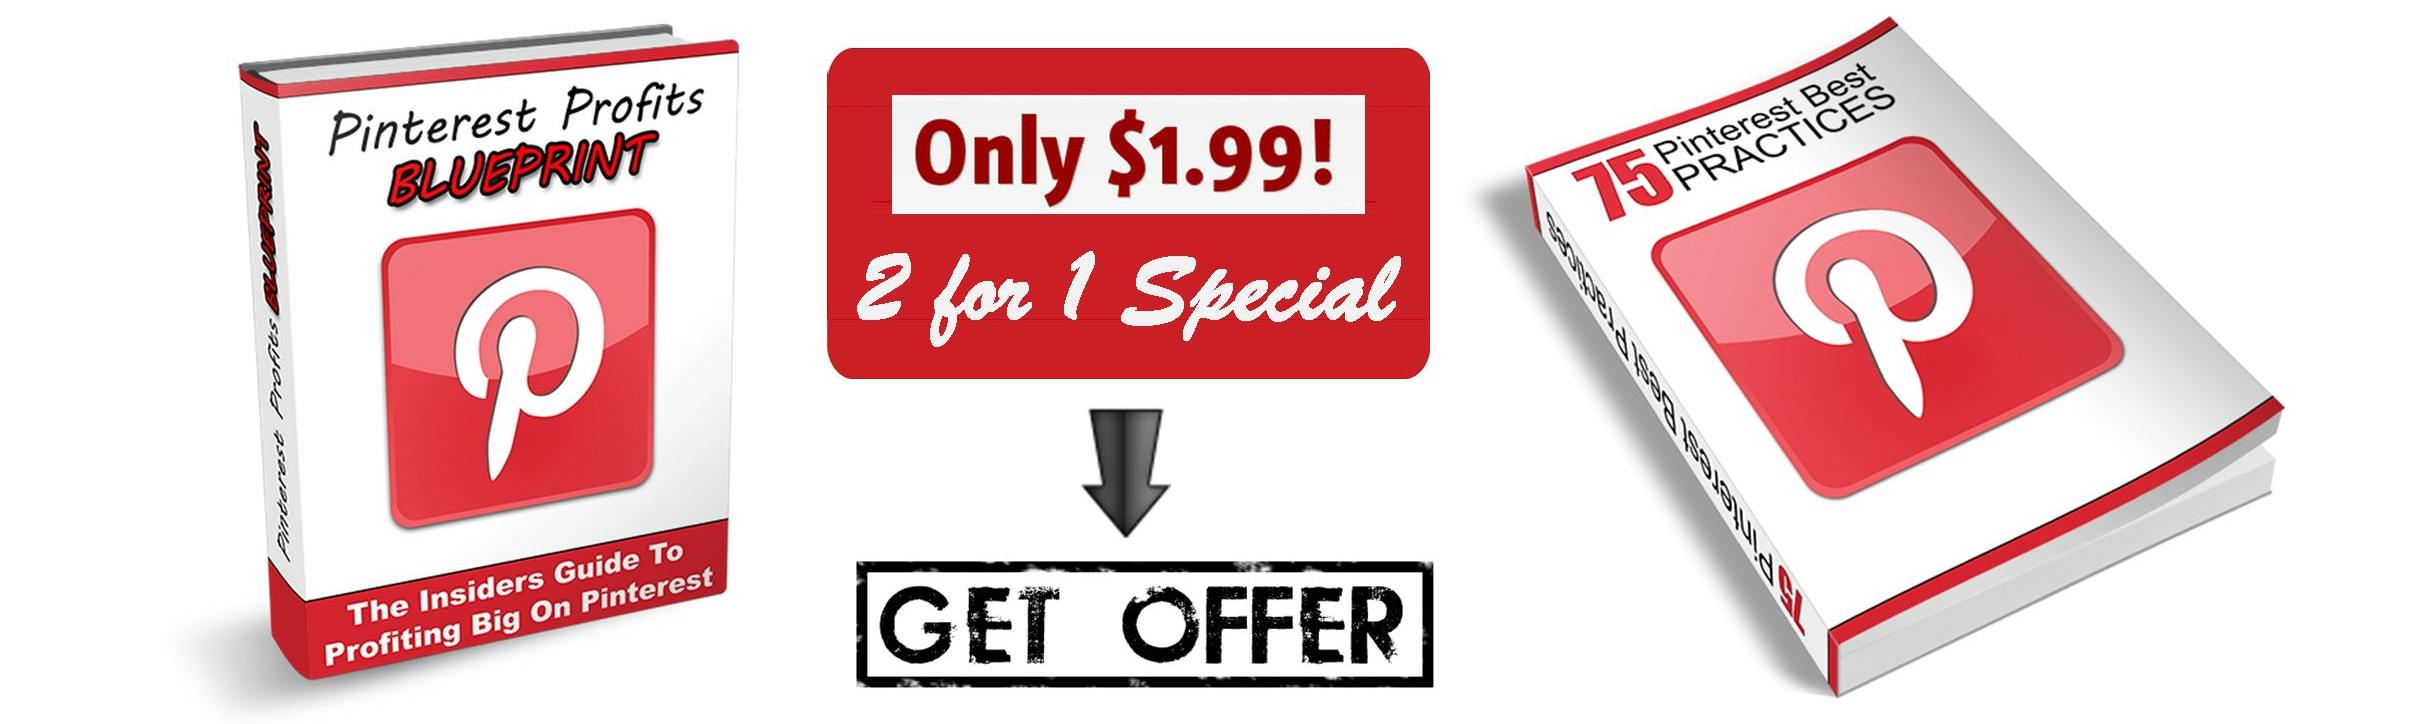 """Pinterest... the """"ins"""" the """"outs"""" the """"ways""""! Get the OFFER!"""